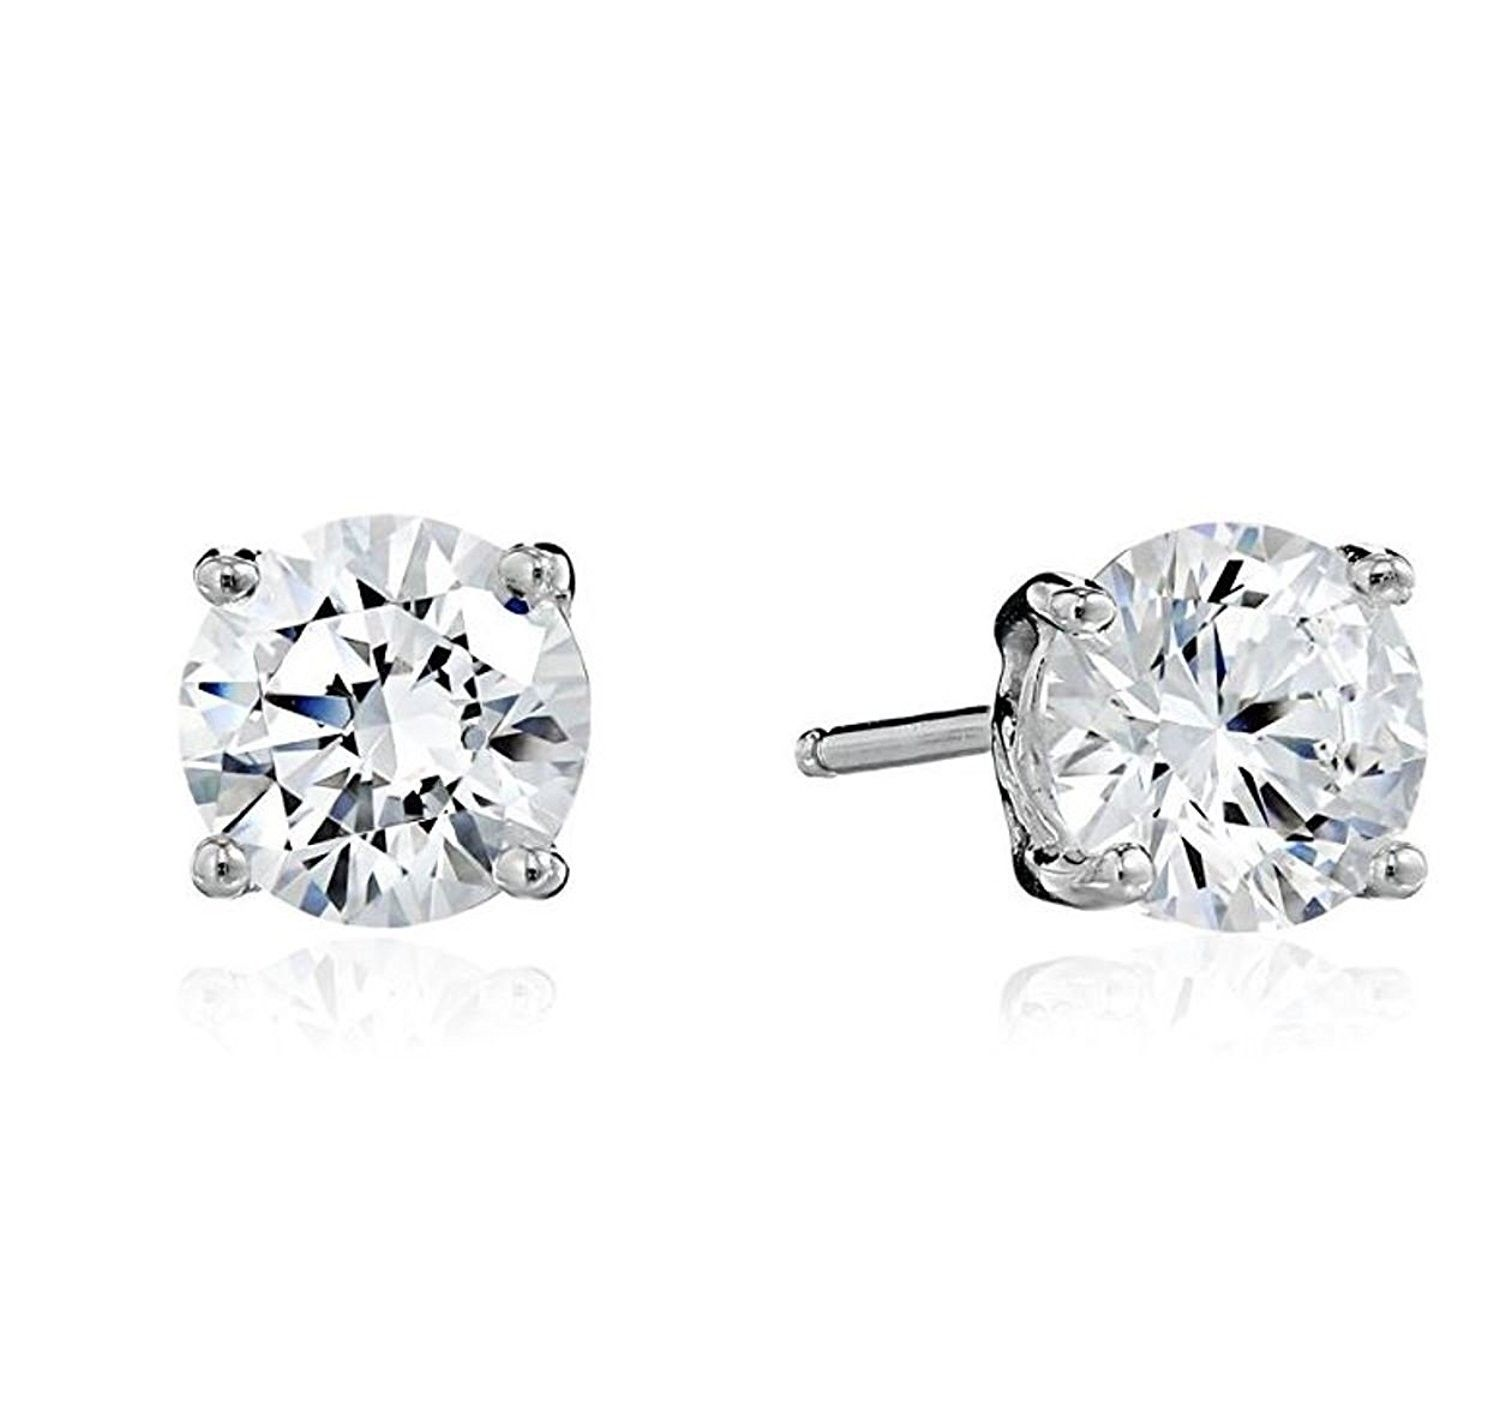 40f4627ef Surgical Stainless Earrings Zirconia Hypoallergenic - CY188HDX2GY - Earrings,  Stud